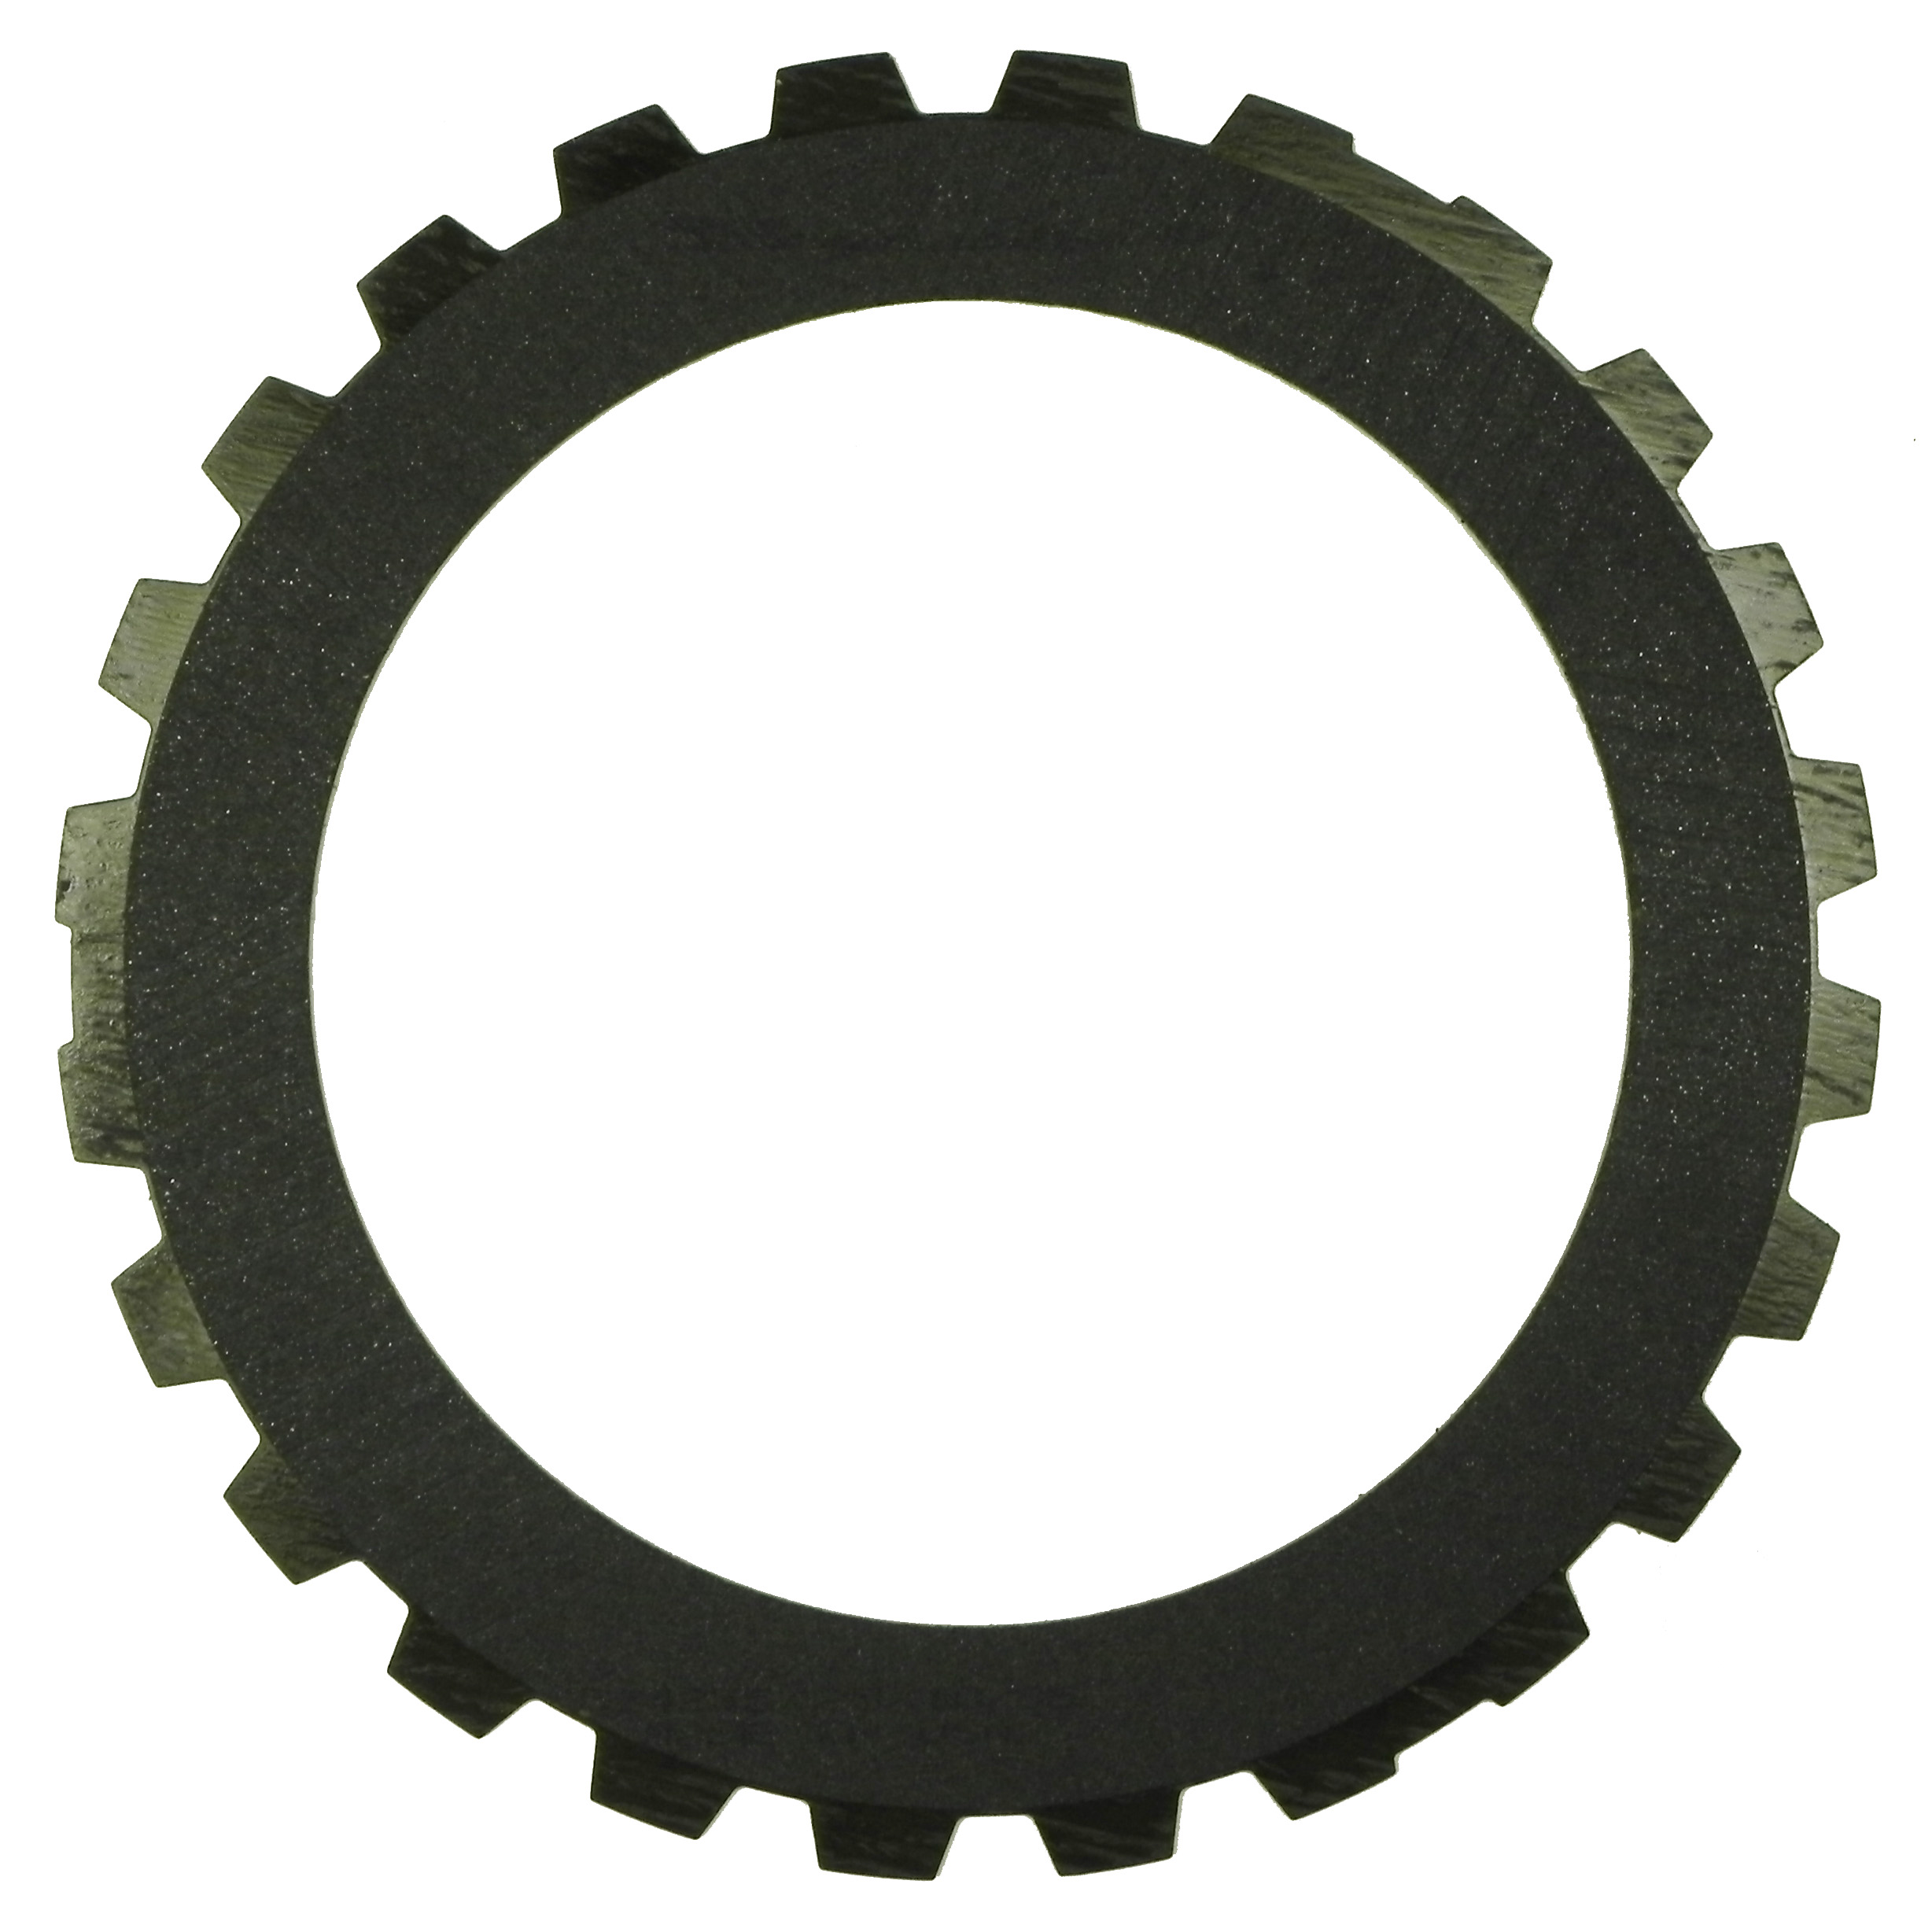 R574255 | 1995-ON Friction Clutch Plate High Energy C Clutch Single Sided, OD Spline High Energy 4HP20